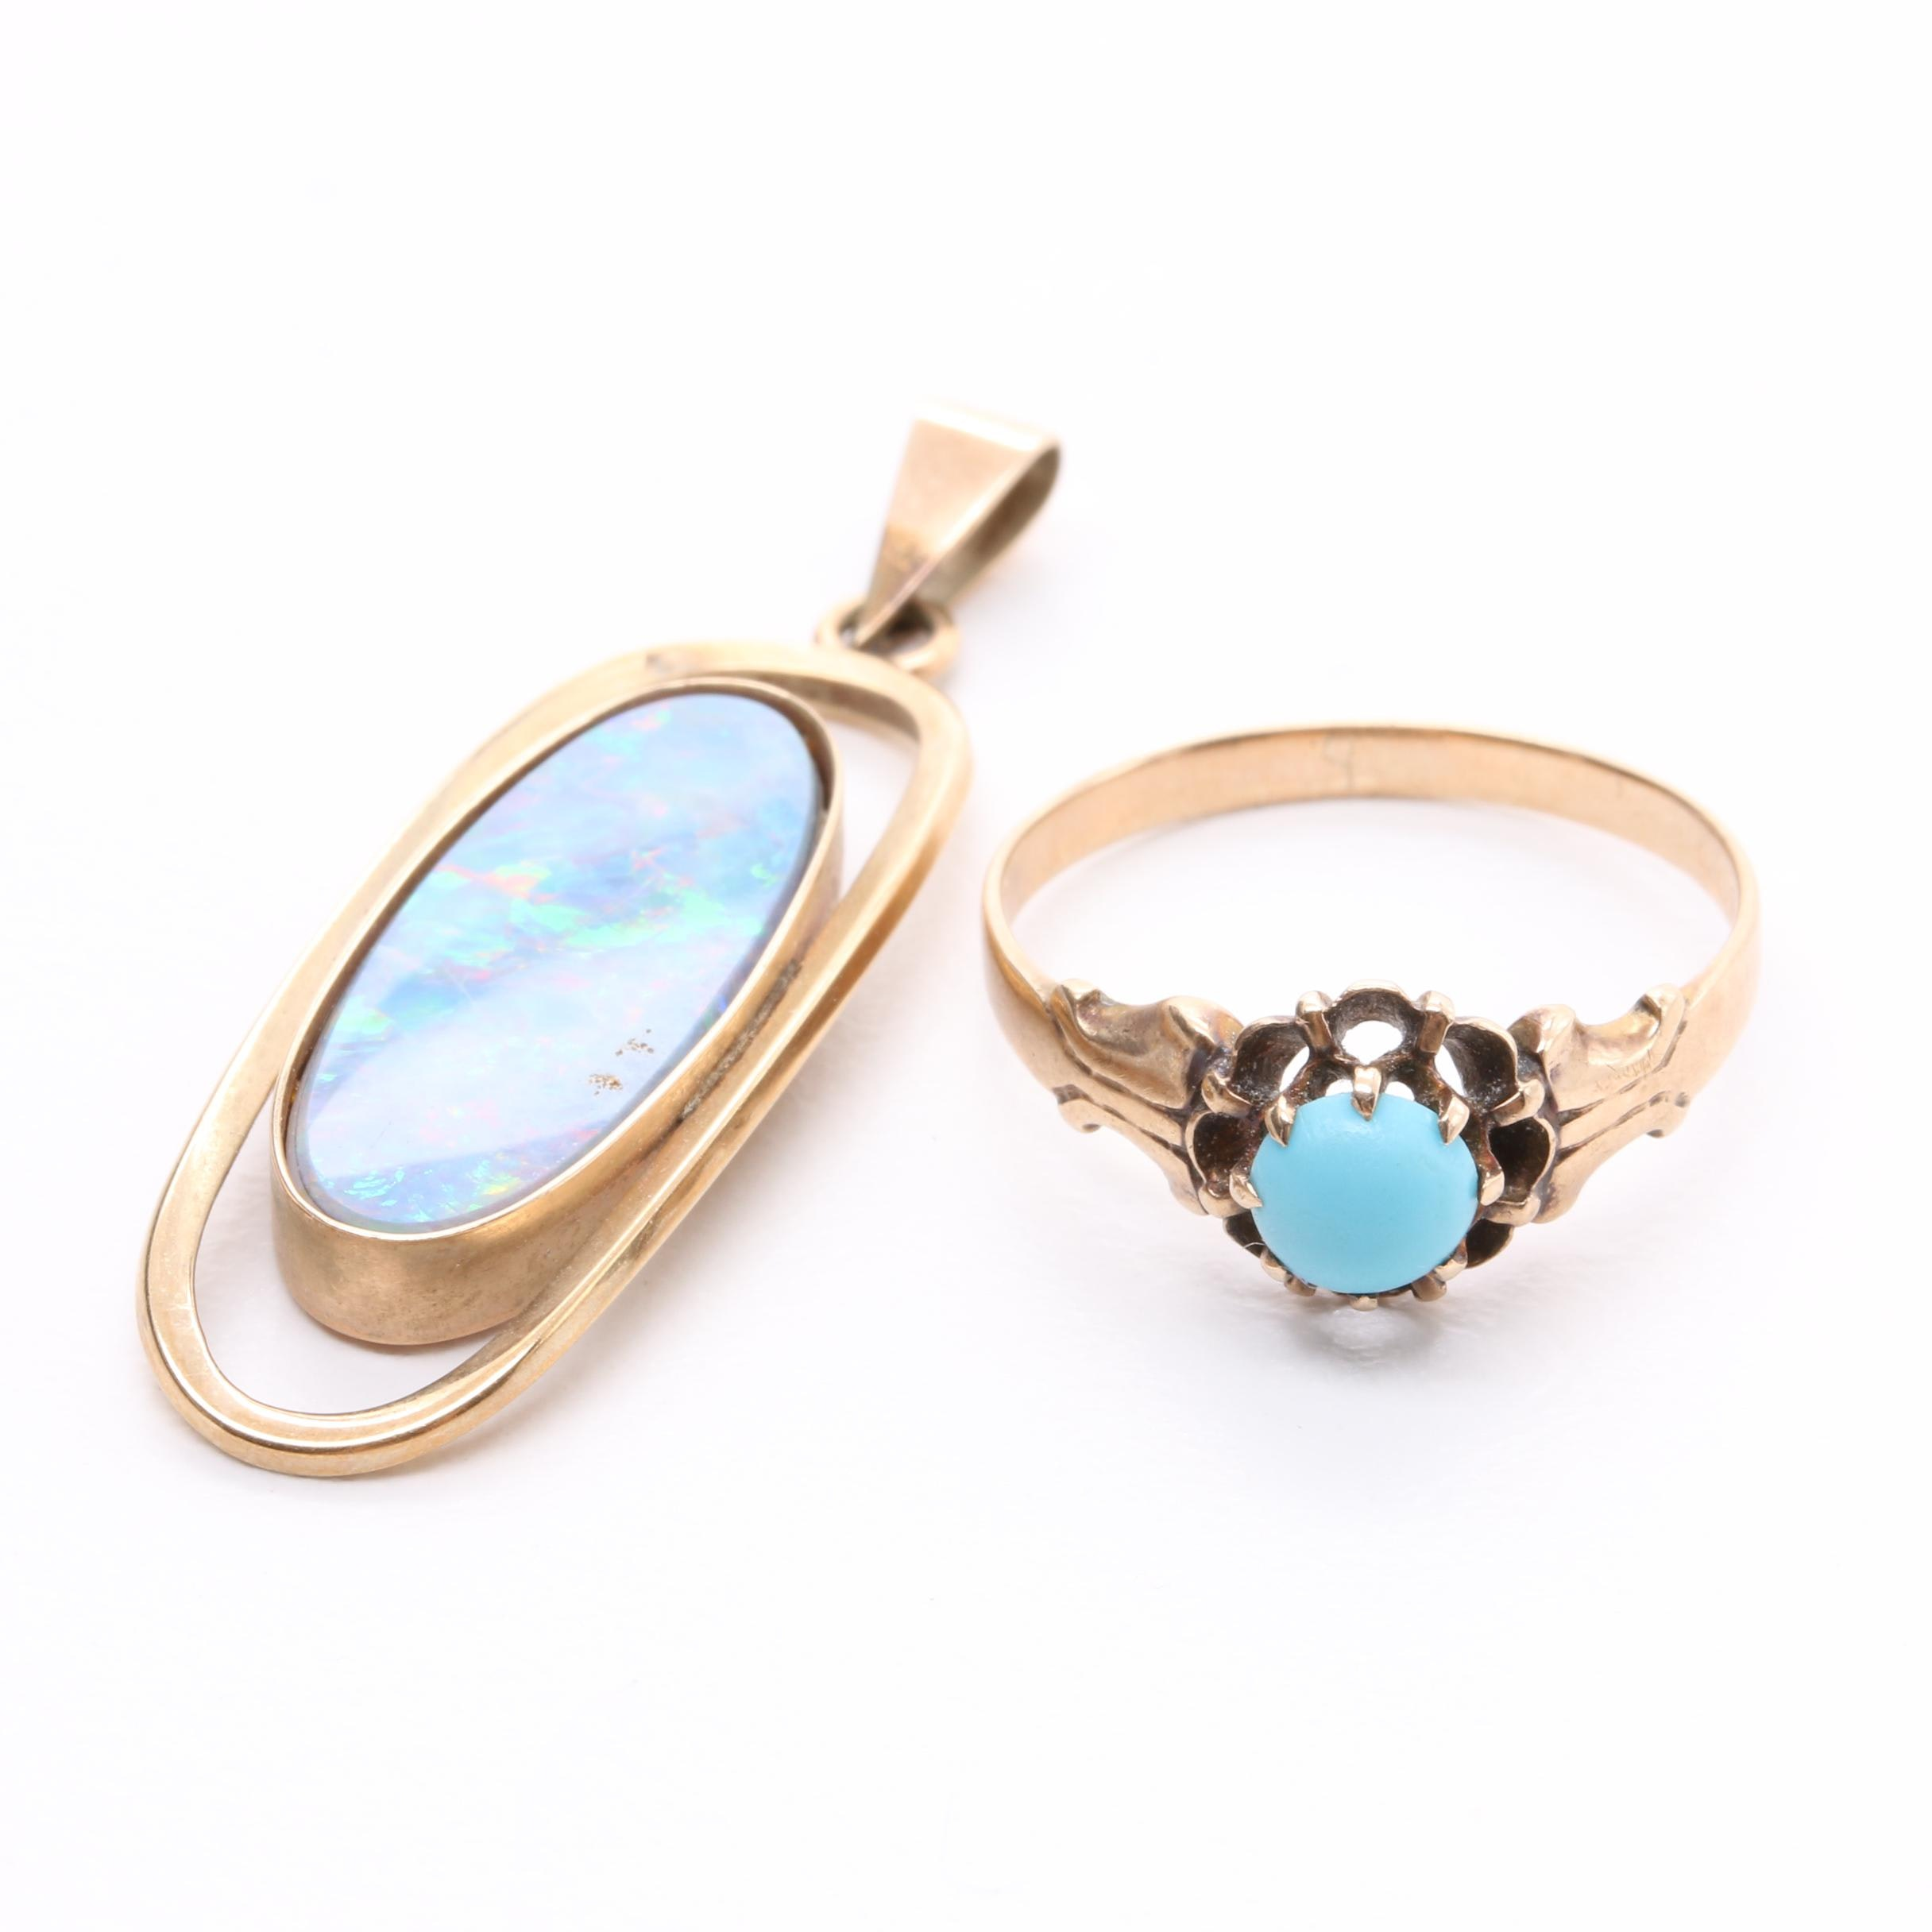 9K Yellow Gold Opal Doublet Pendant and 10K Yellow Gold Turquoise Ring